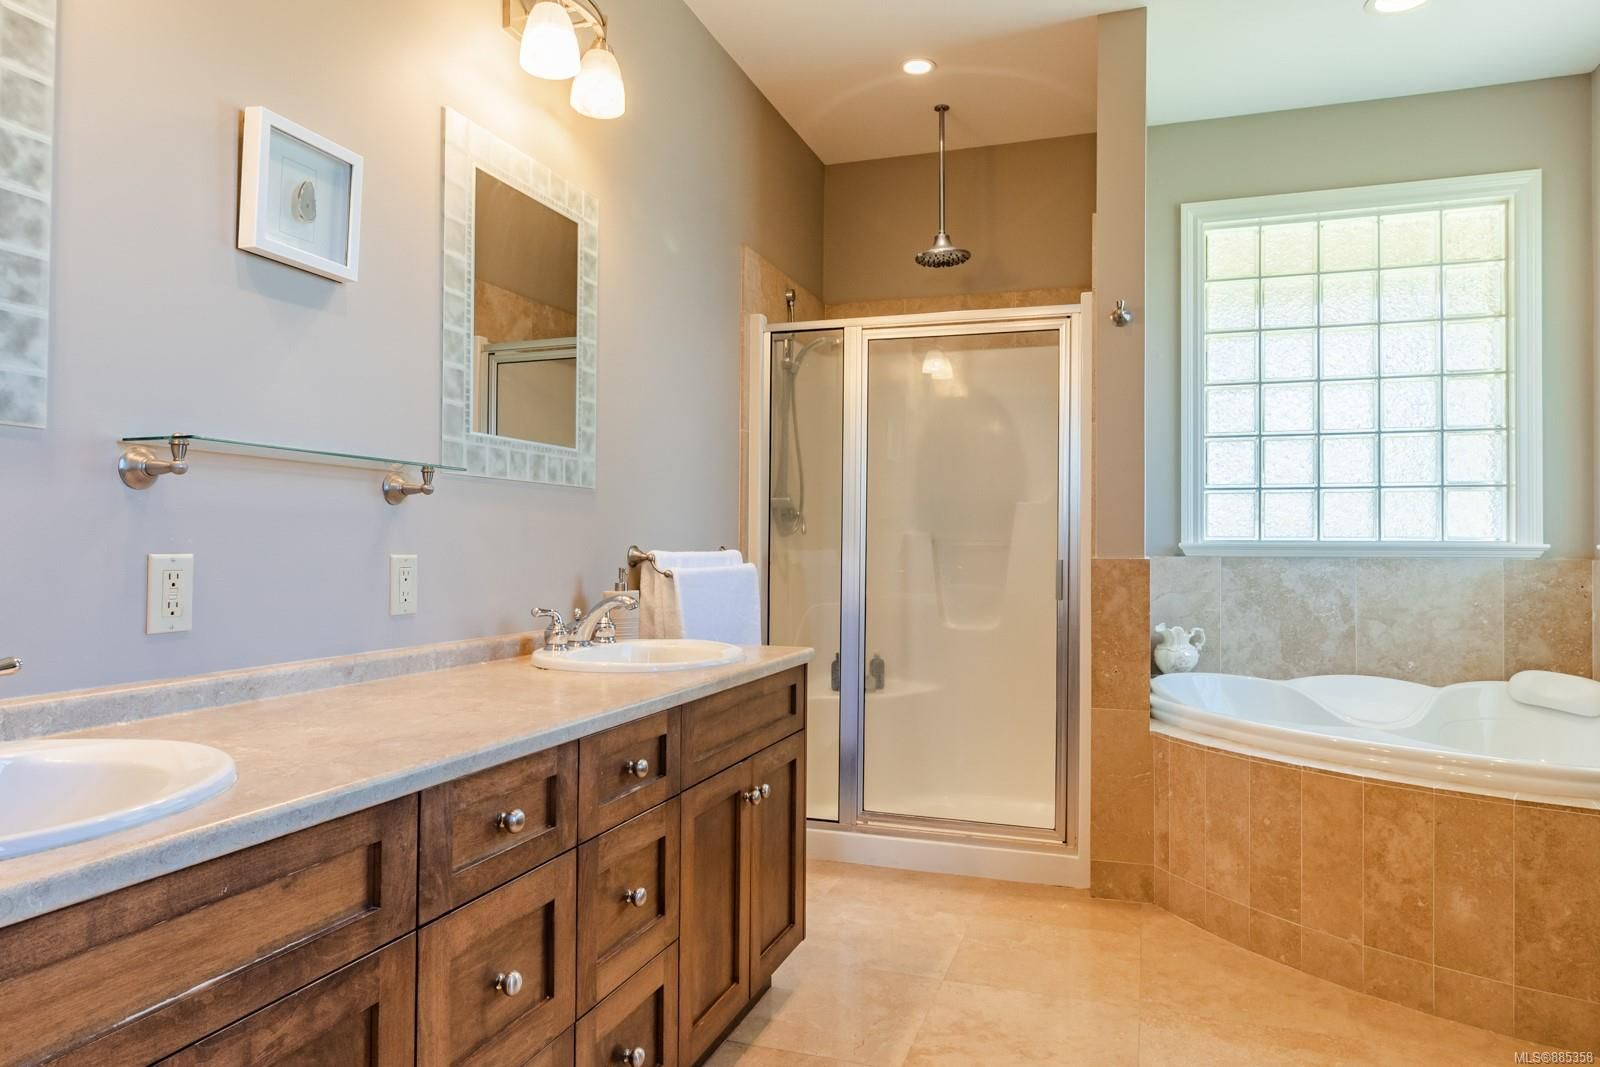 Photo 19: Photos: 2850 Peters Rd in : PQ Qualicum Beach House for sale (Parksville/Qualicum)  : MLS®# 885358